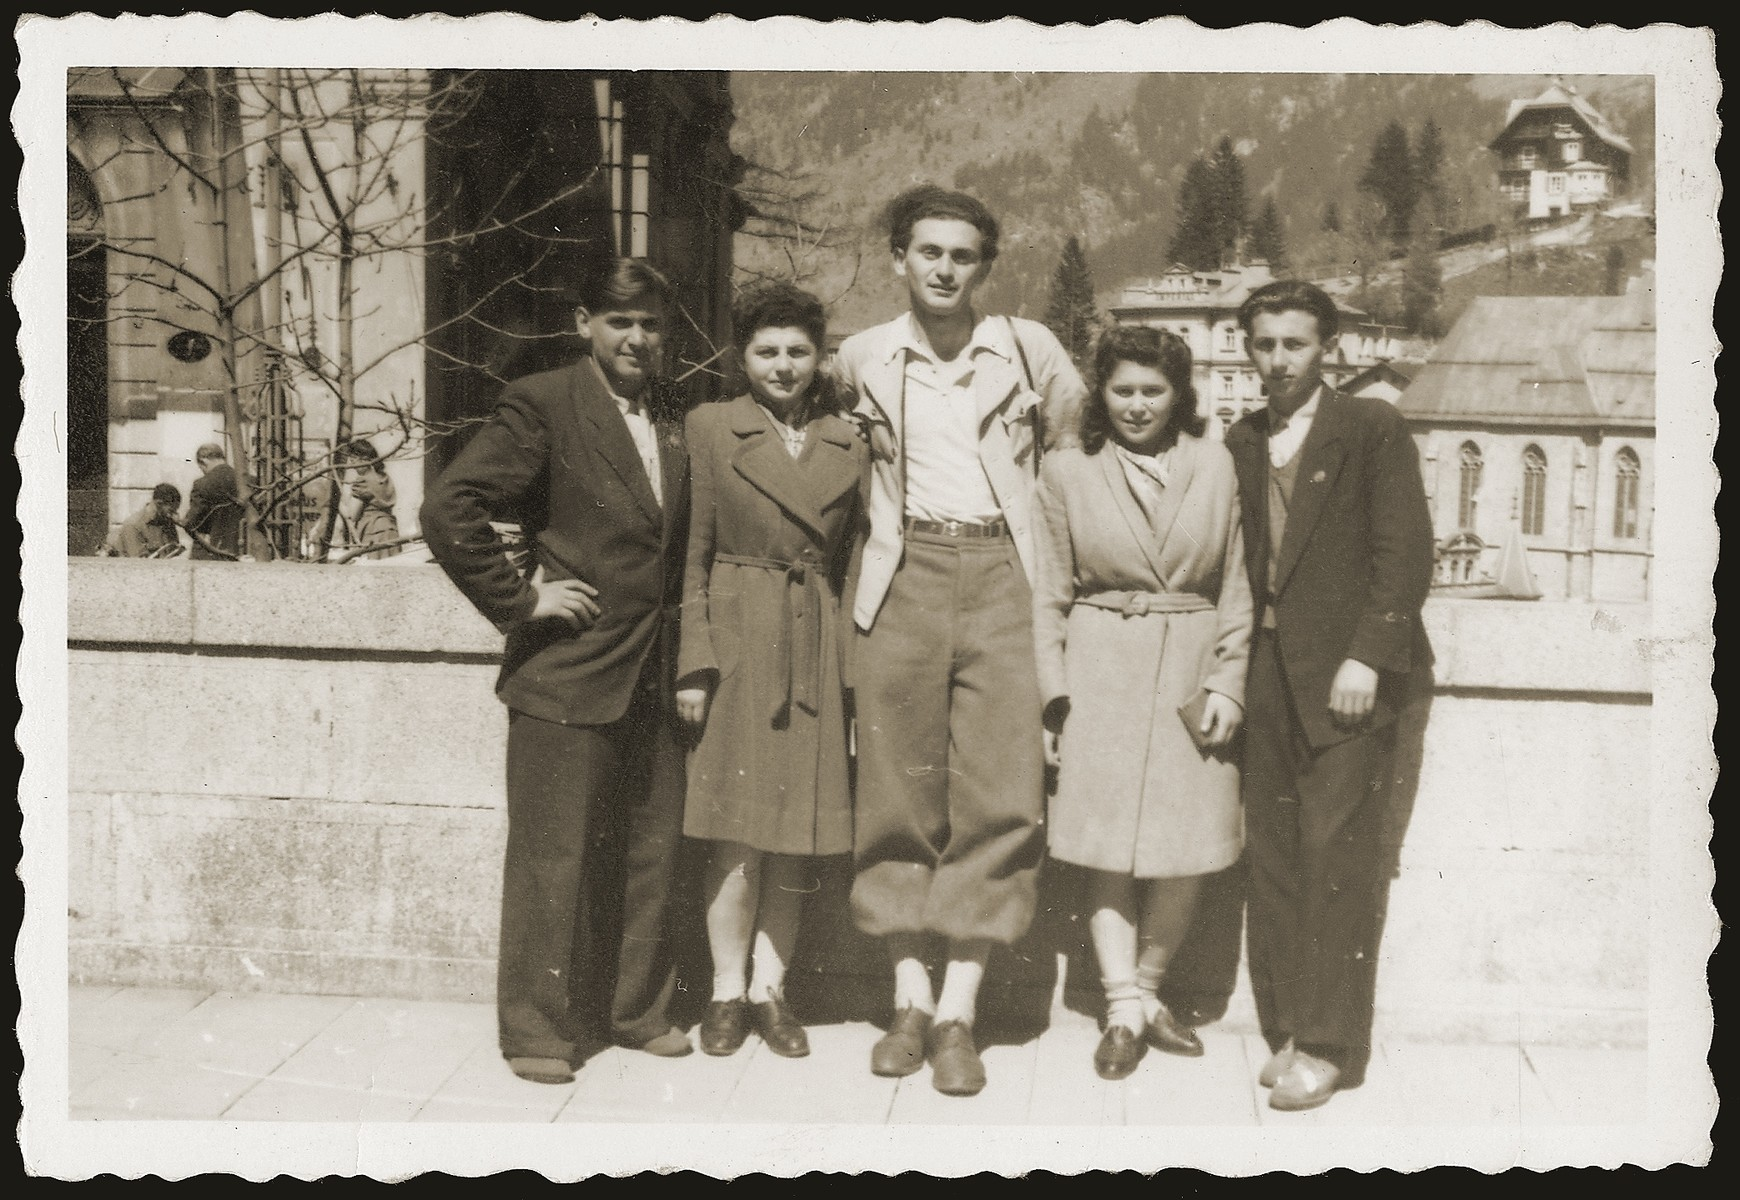 Salek Liwer (center) with friends at a Dror Zionist youth movement seminar in the Bad Gastein displaced persons camp.